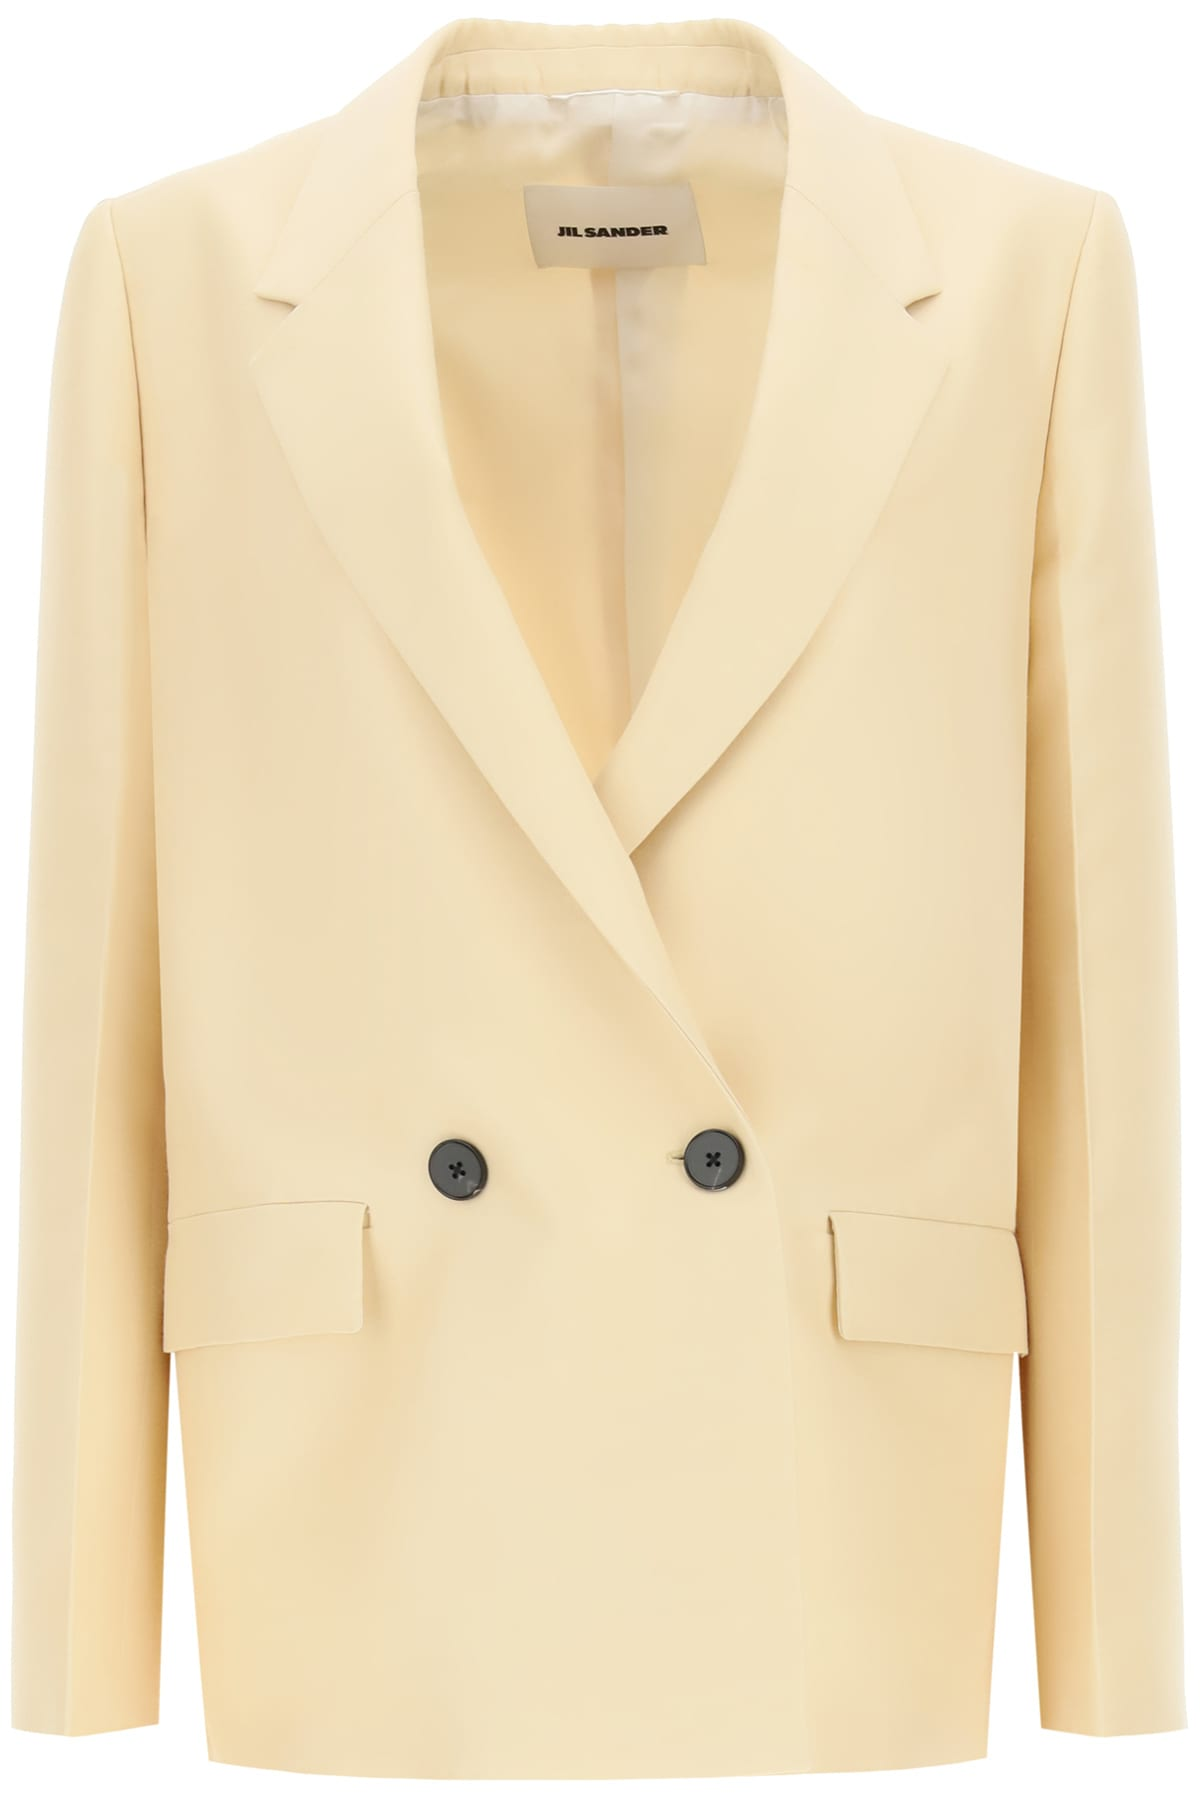 Jil Sander Jackets TAILORED JACKET